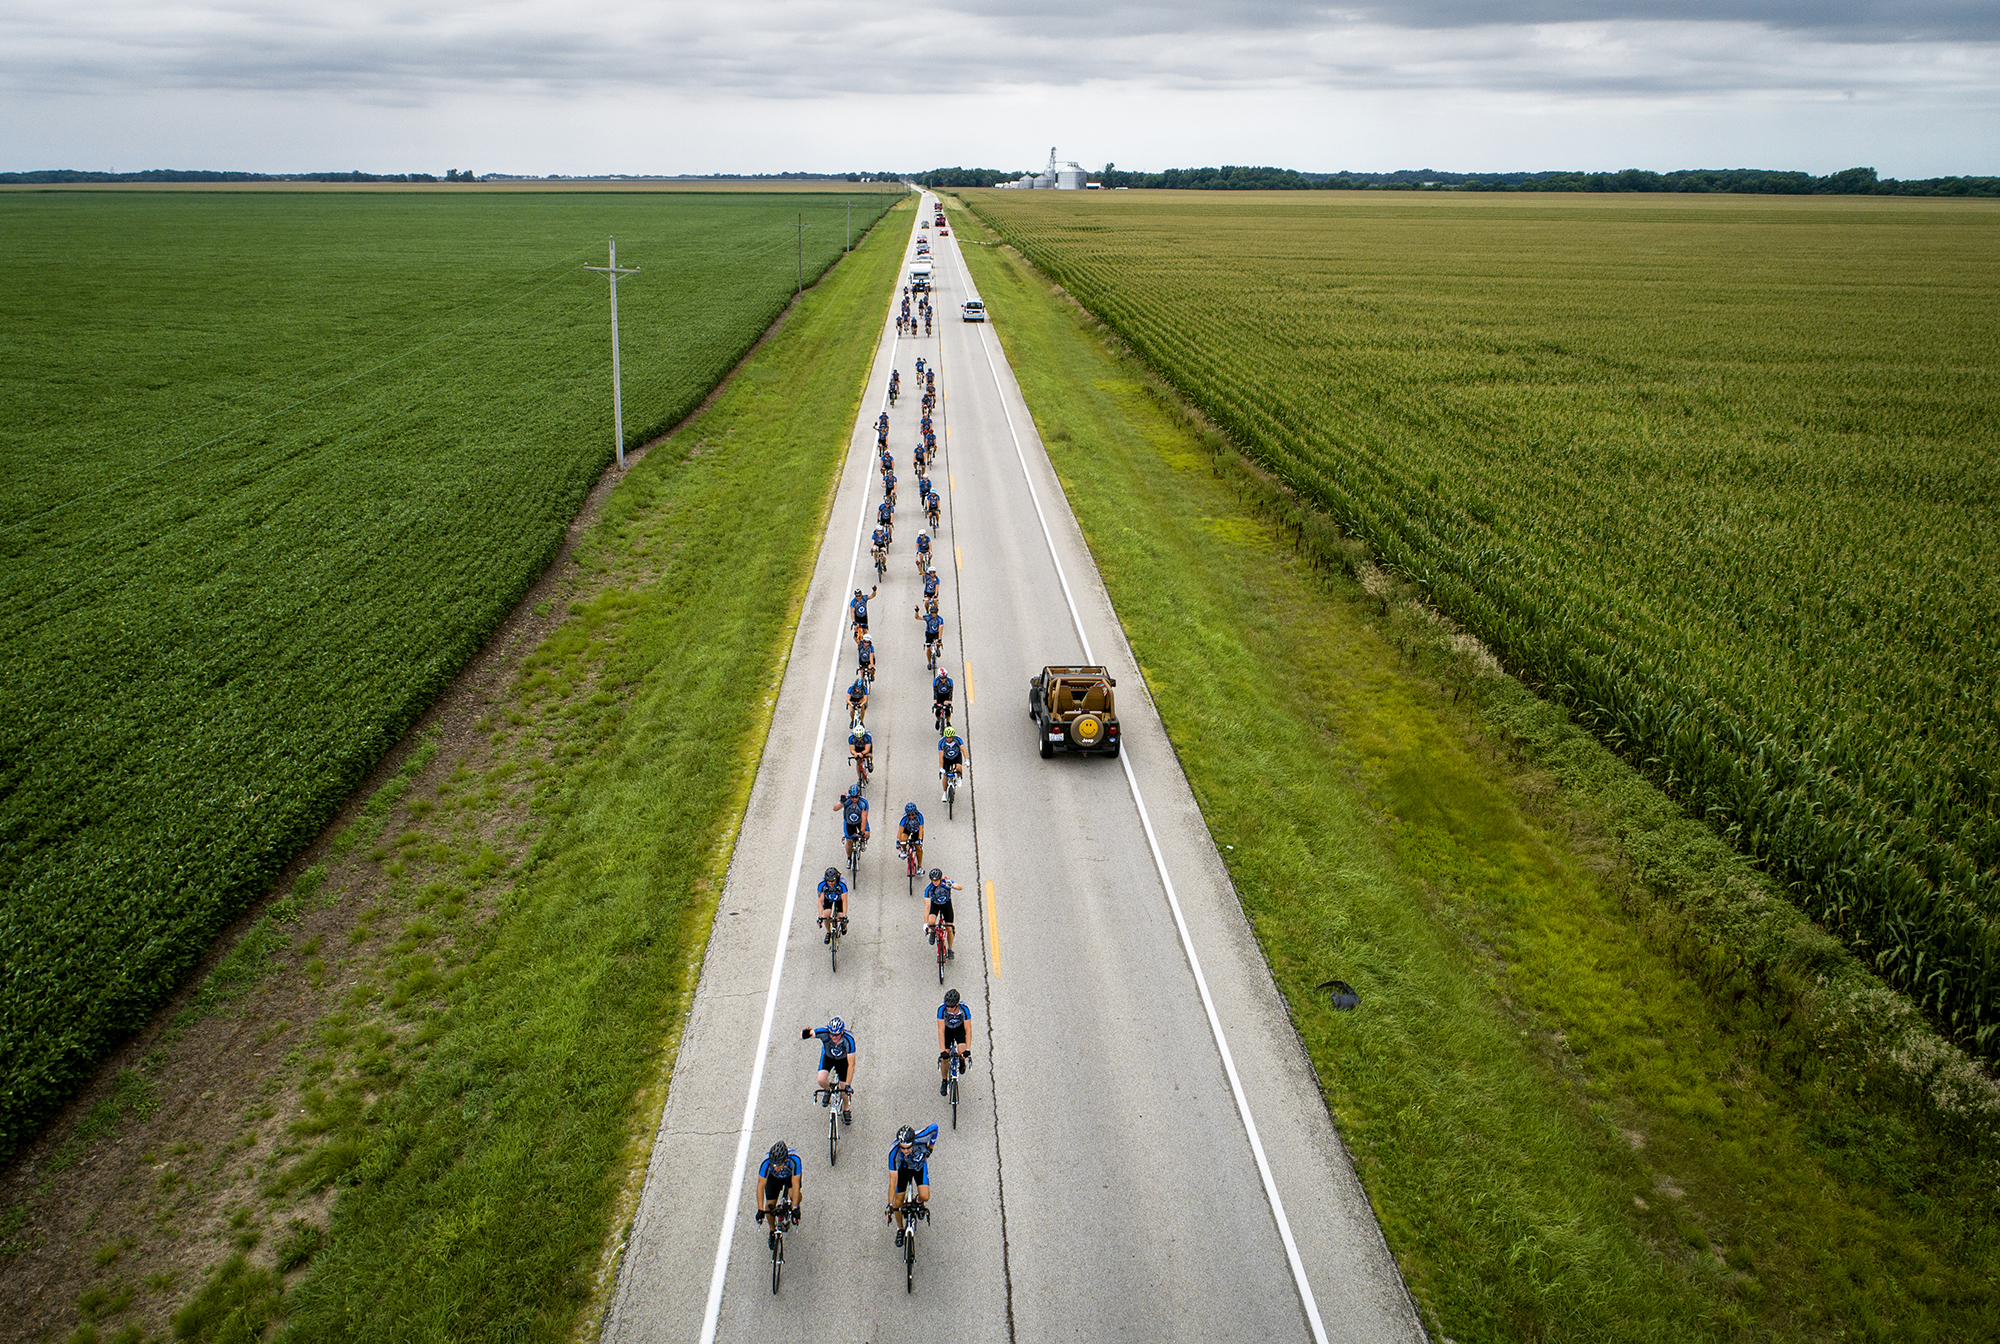 Cyclists with the Illinois Chapter of Concerns of Police Survivors (ÒC.O.P.SÓ) head east on Old Jacksonville Road during the 14th annual Cycle Across Illinois on their way to Springfield after beginning the day in Alton, Thursday, July 19, 2018, near New Berlin, Ill. Cycle Across Illinois is a charity bicycle ride to support the Illinois families of law enforcement officers who have died in the line of duty. The ride is over 300 miles and began at the Mississippi River in Alton, Ill., and will end at the Gold Star Families Memorial and Park in Chicago, Ill. [Justin L. Fowler/The State Journal-Register]